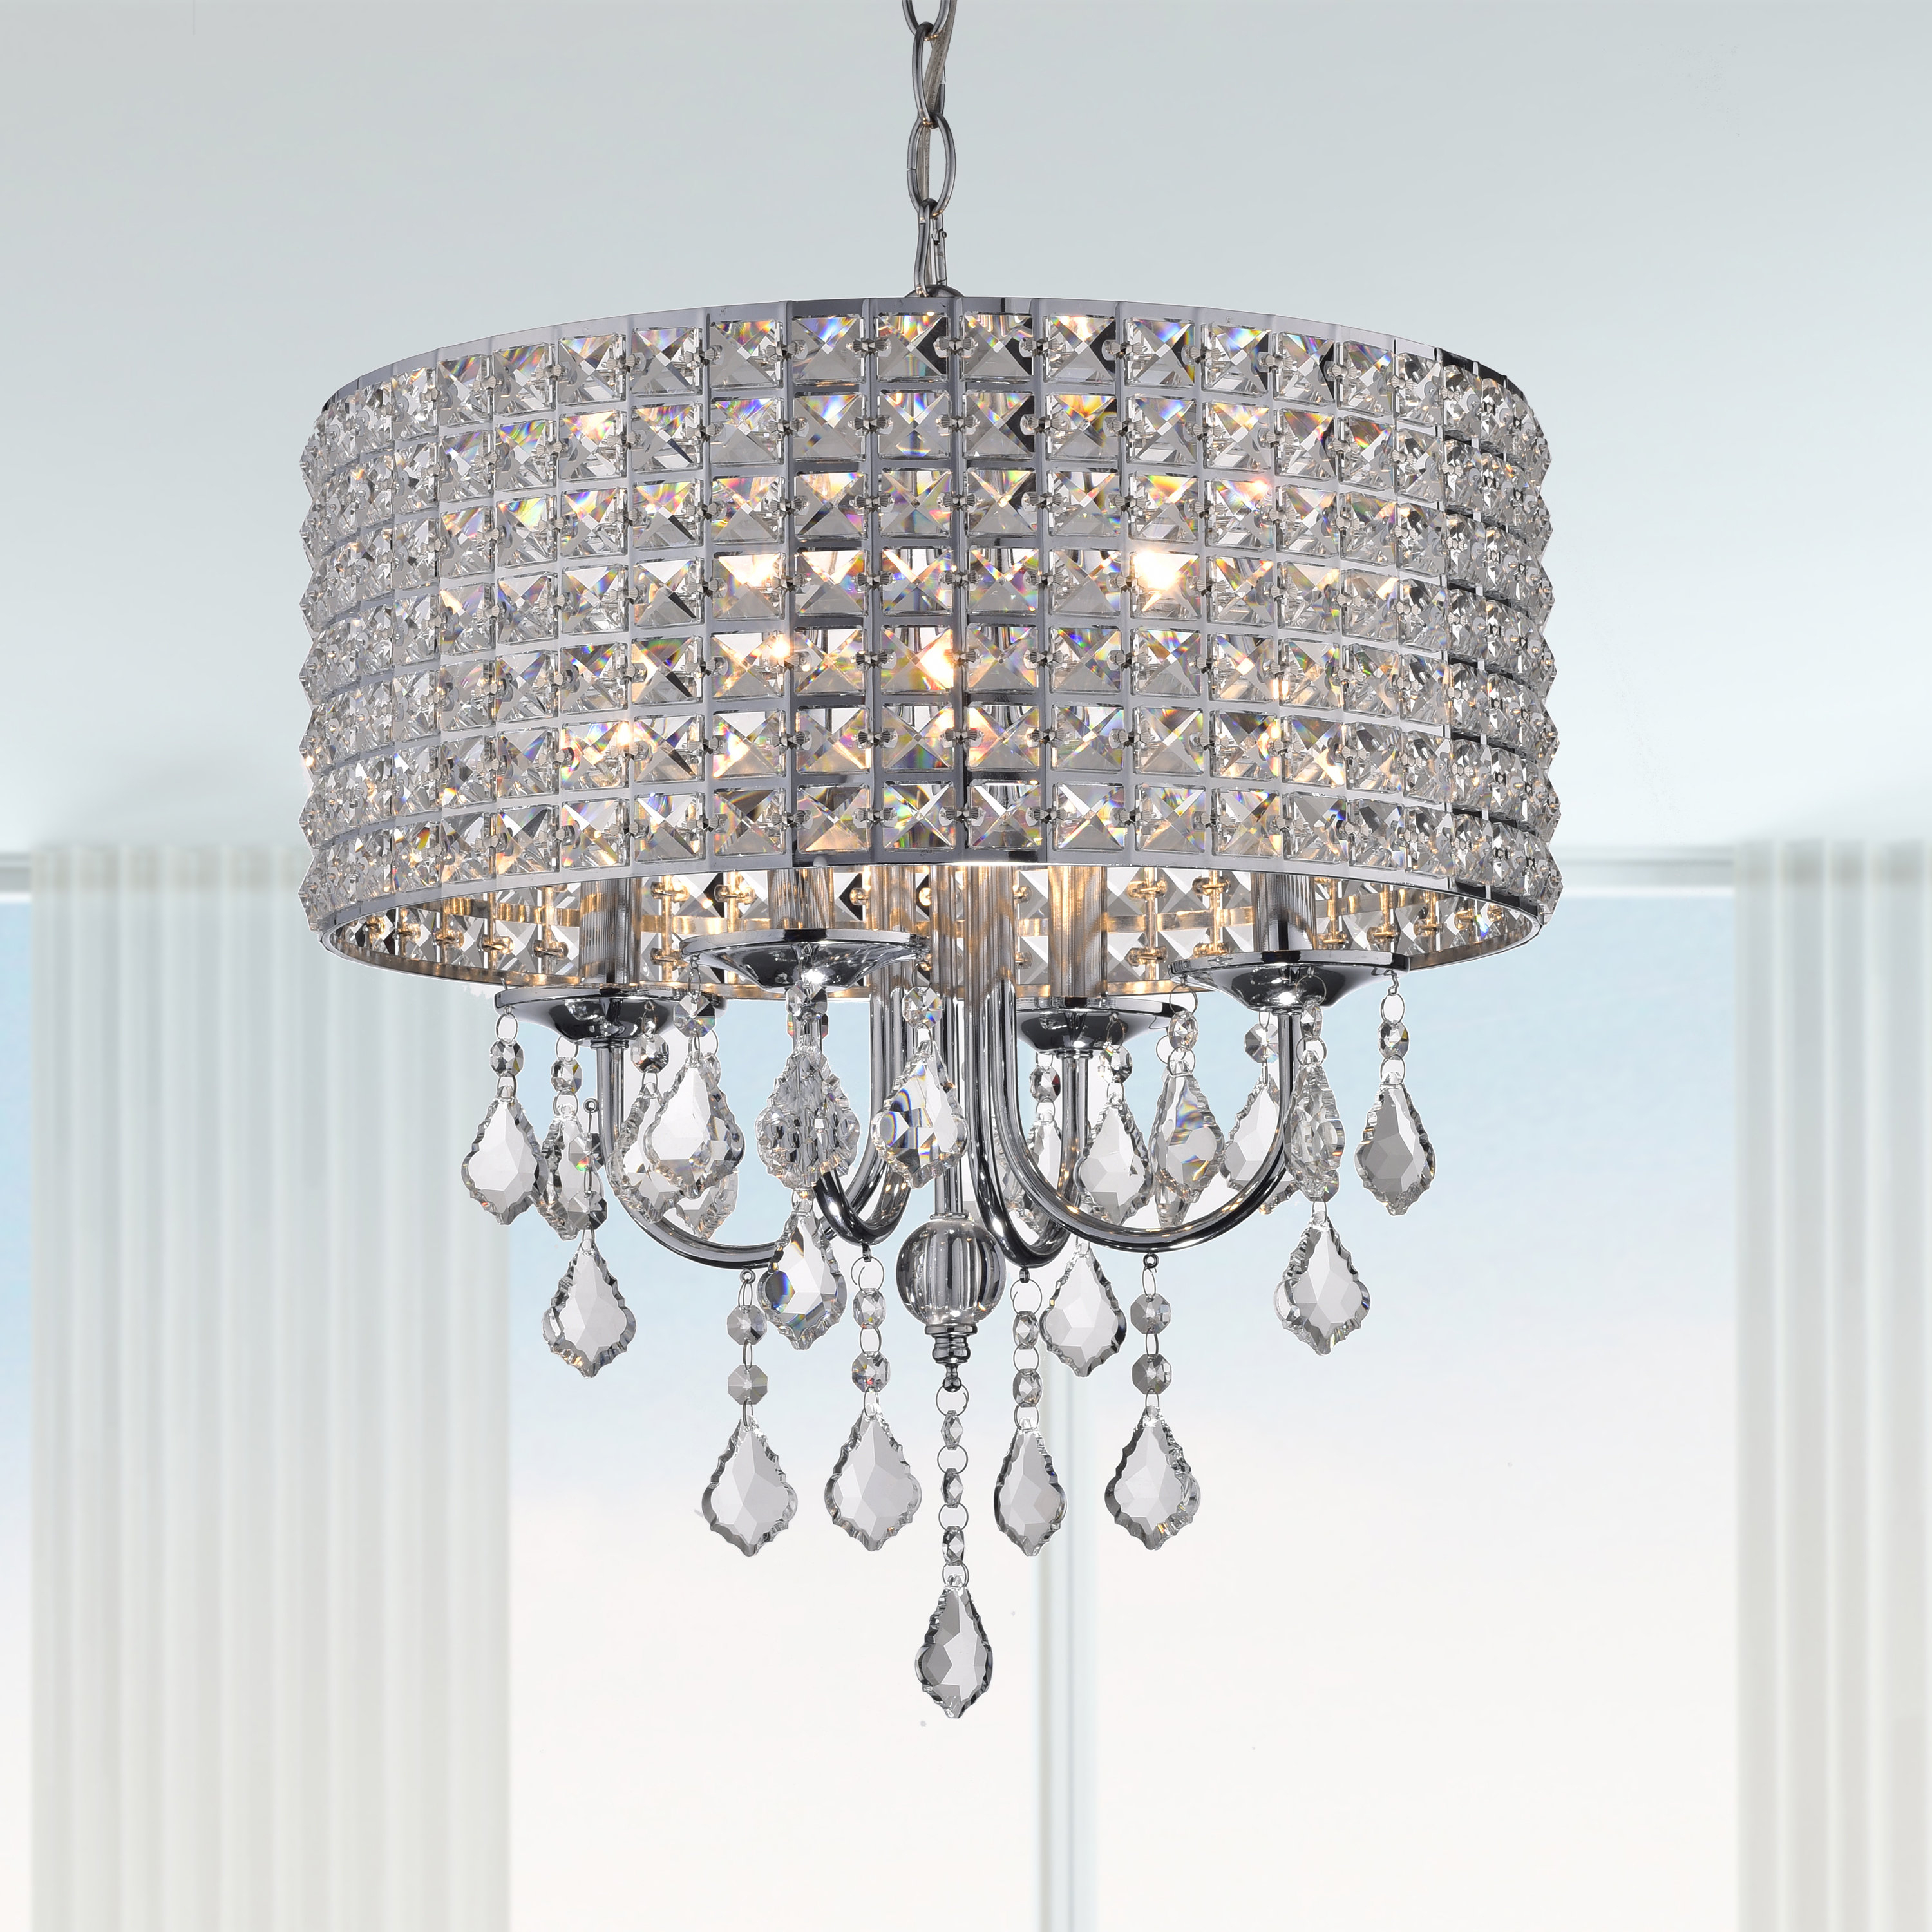 Most Popular Albano 4 Light Crystal Chandelier With Regard To Gisselle 4 Light Drum Chandeliers (View 16 of 25)